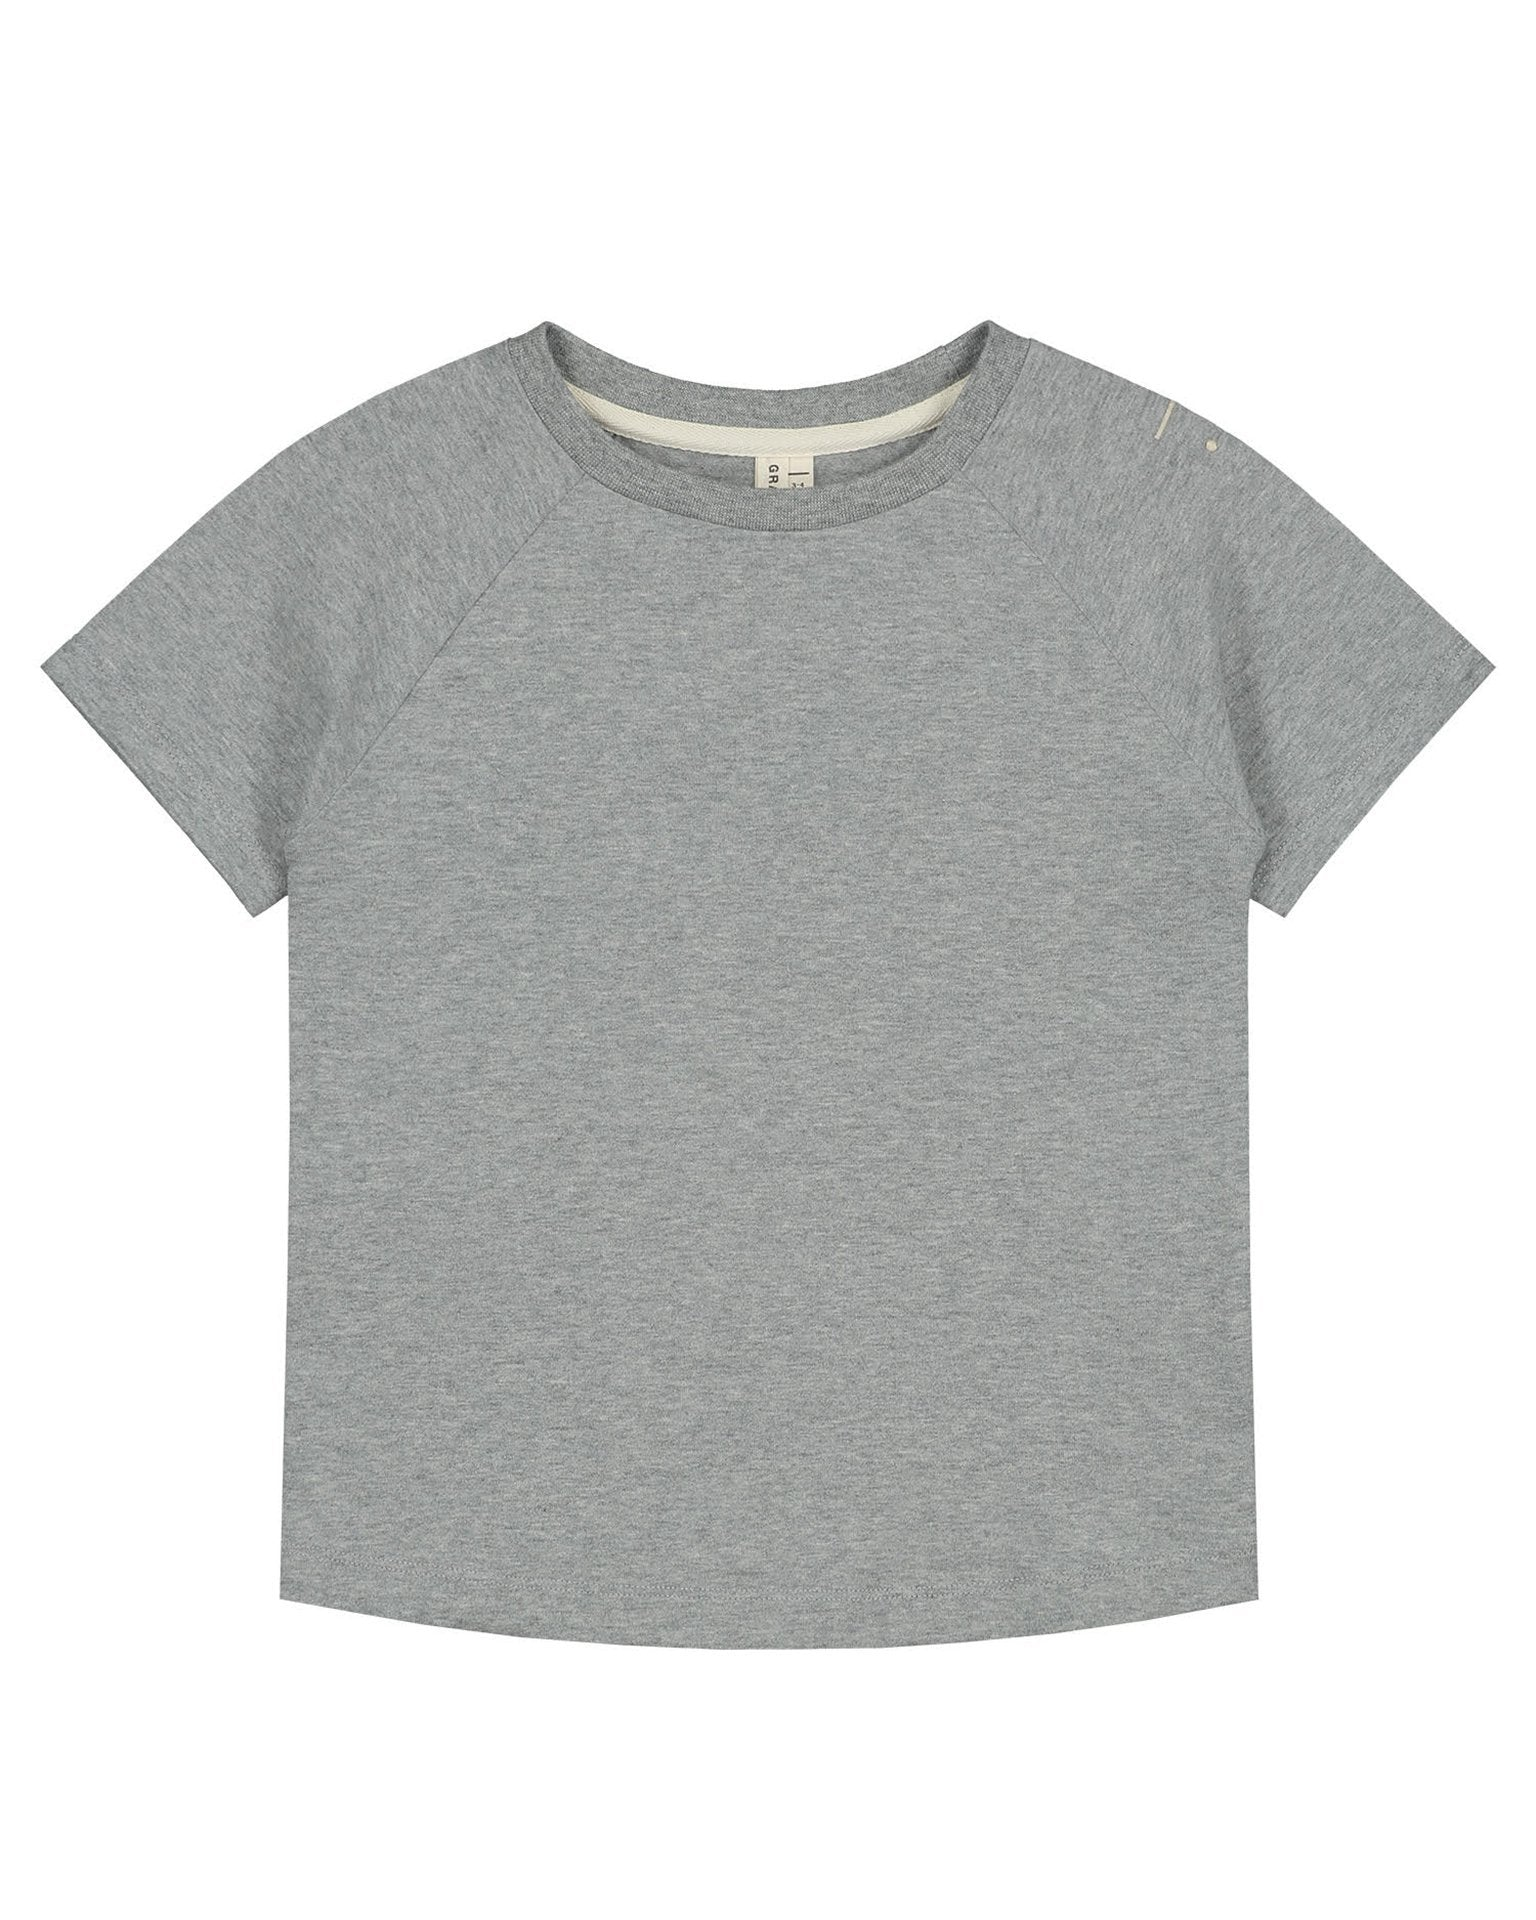 Little gray label boy crewneck tee in grey melange